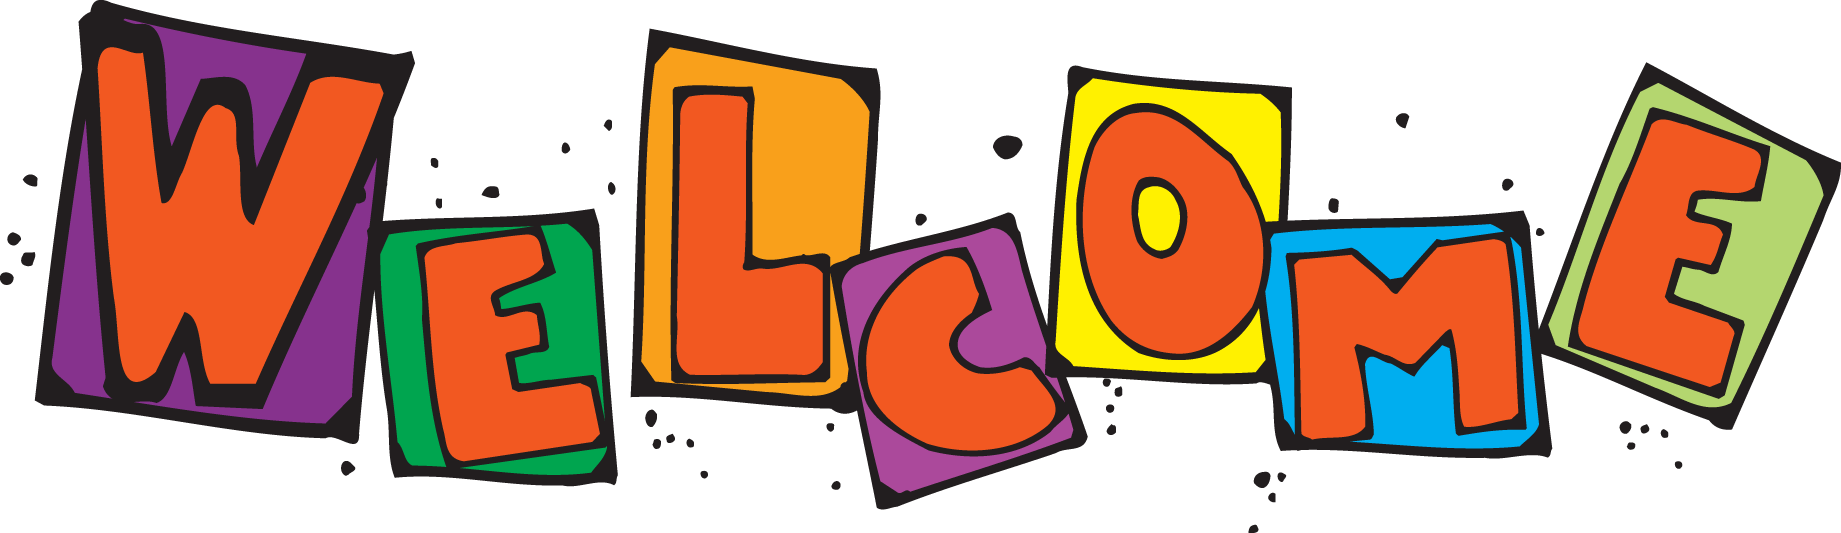 hight resolution of welcome back clipart animated clipartfest